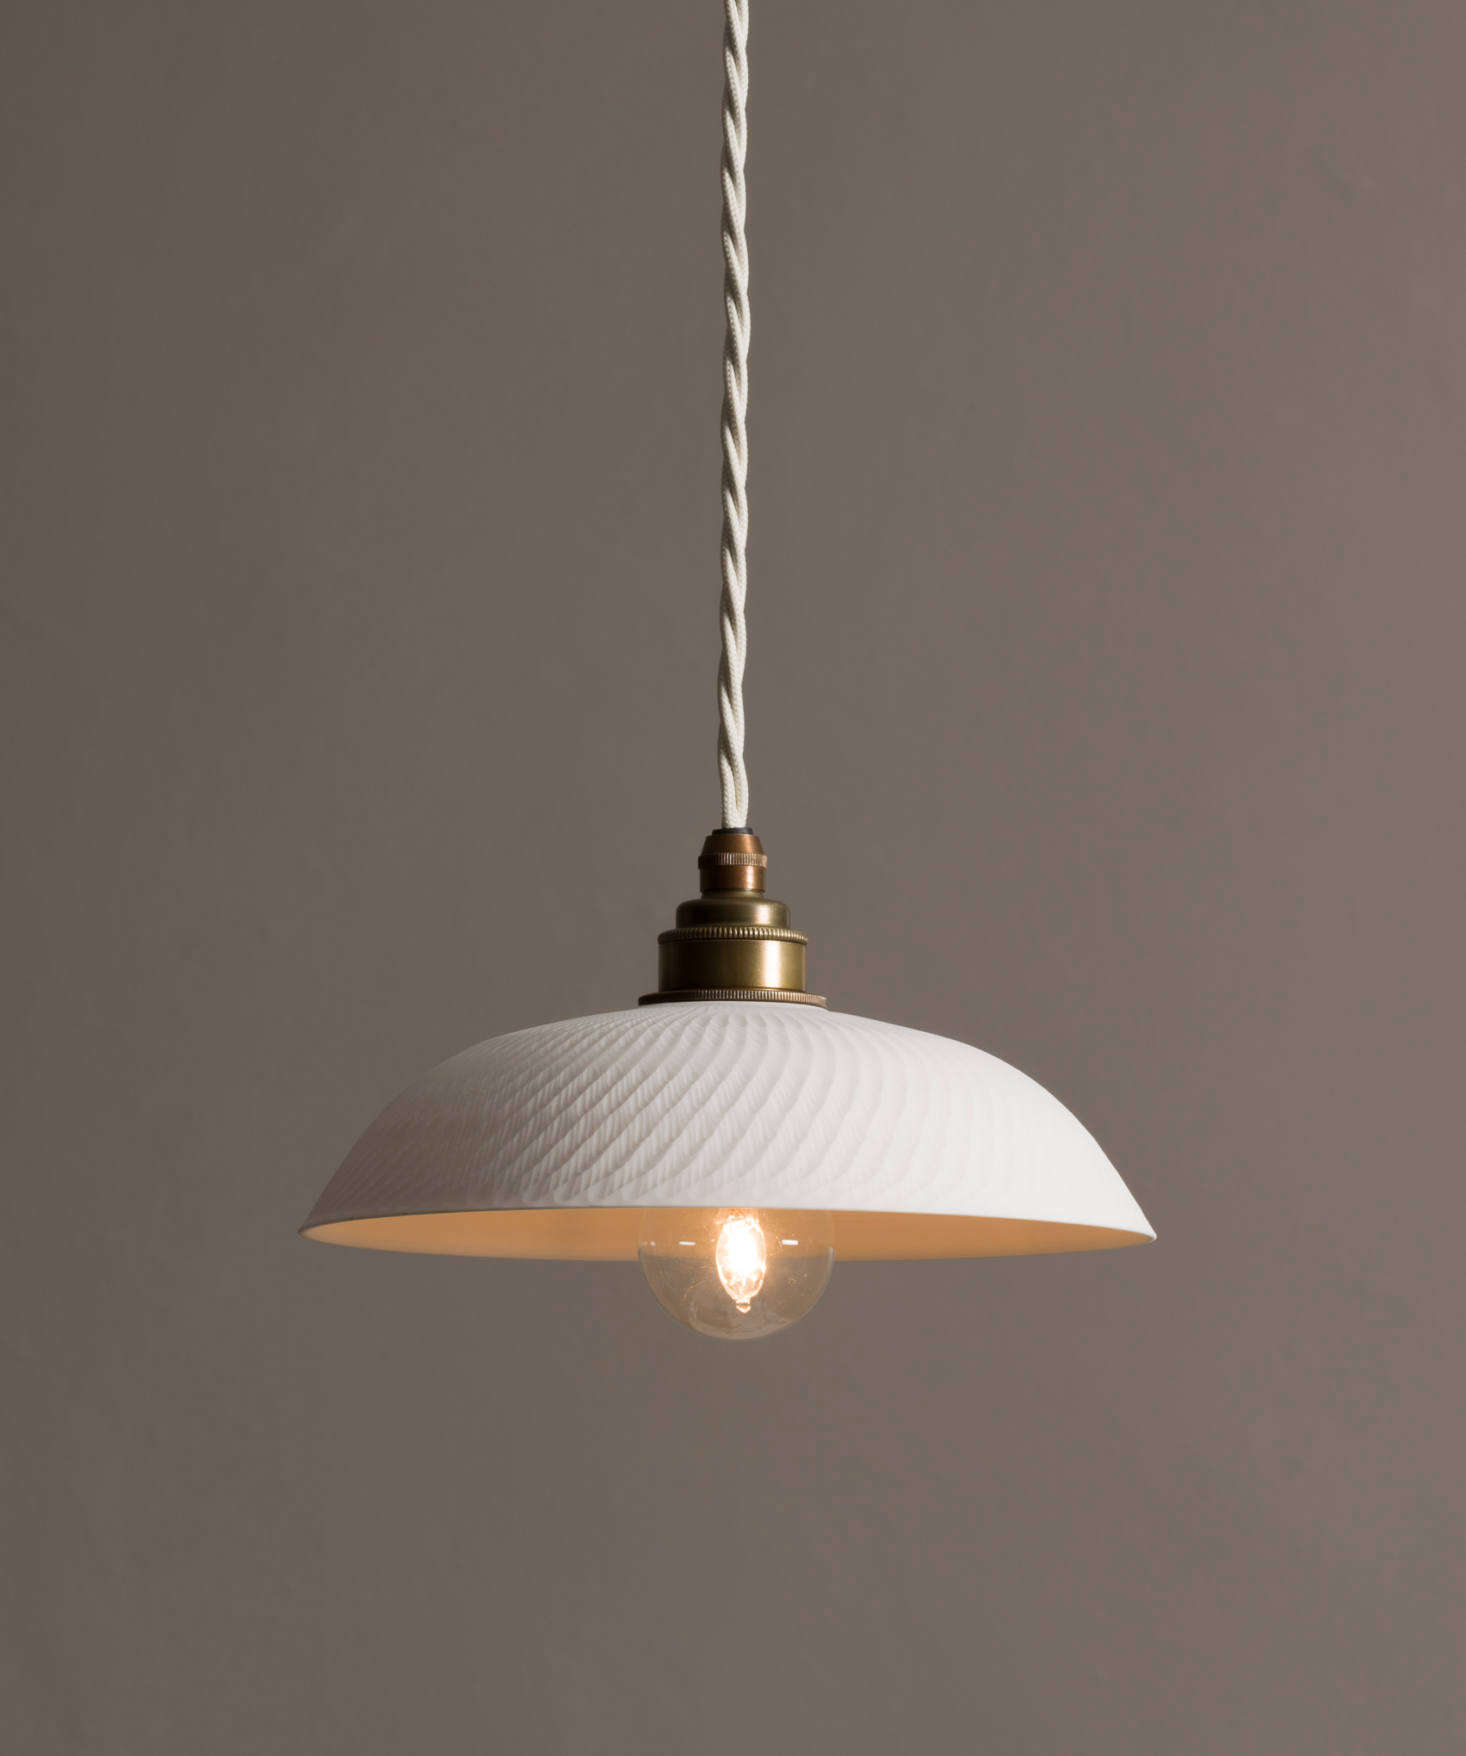 Pendant Lighting New From Devol Porcelain Pendant Lights Handmade In England